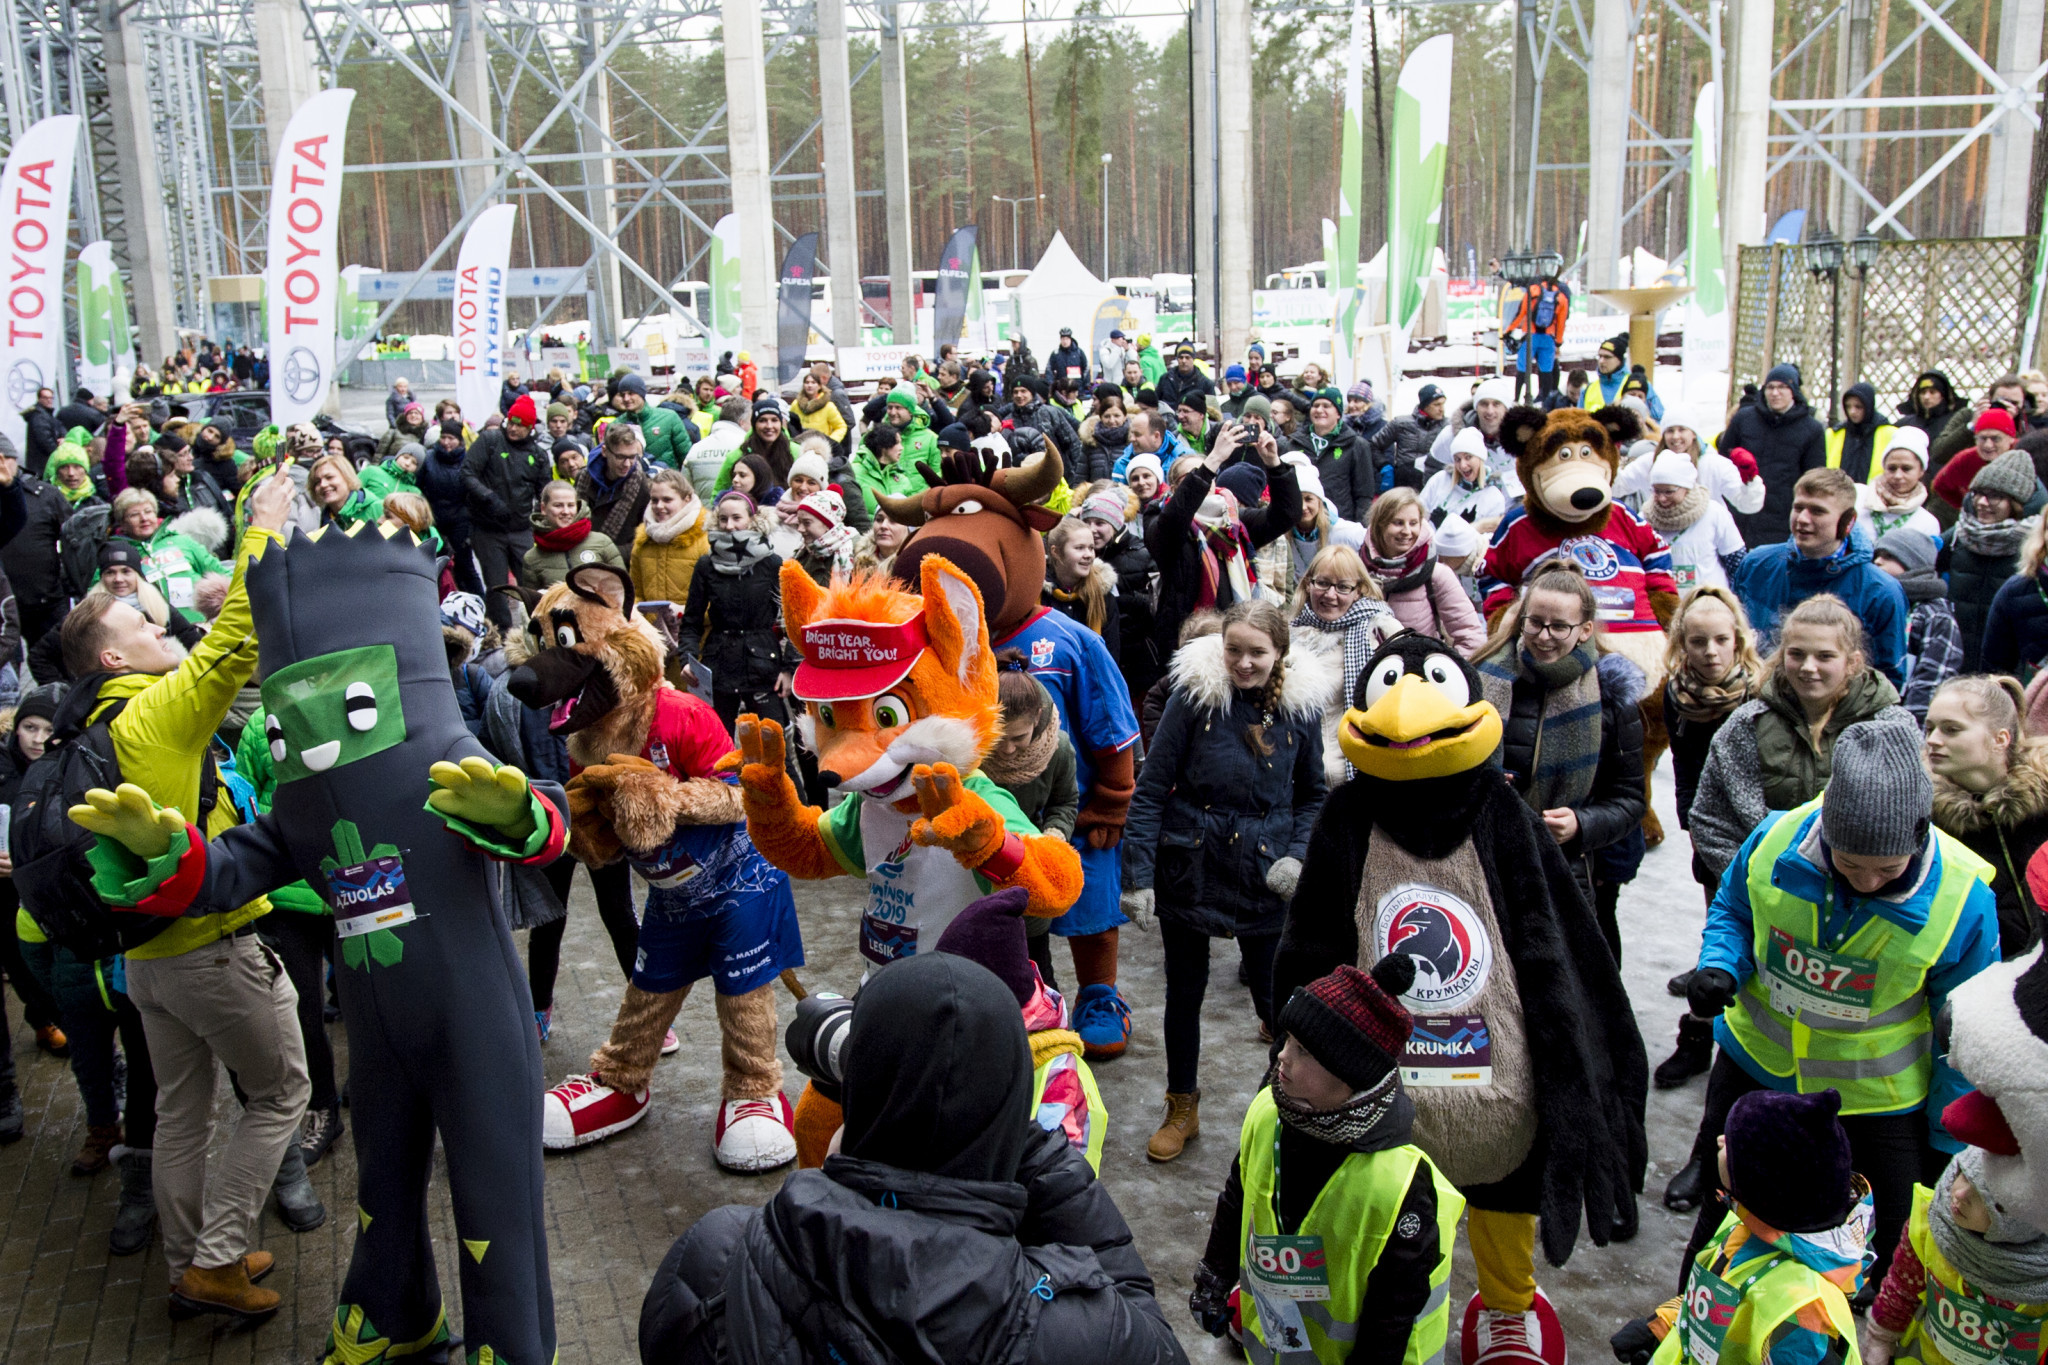 Lithuanian Olympic Committee hold Winter Festival in Druskininkai